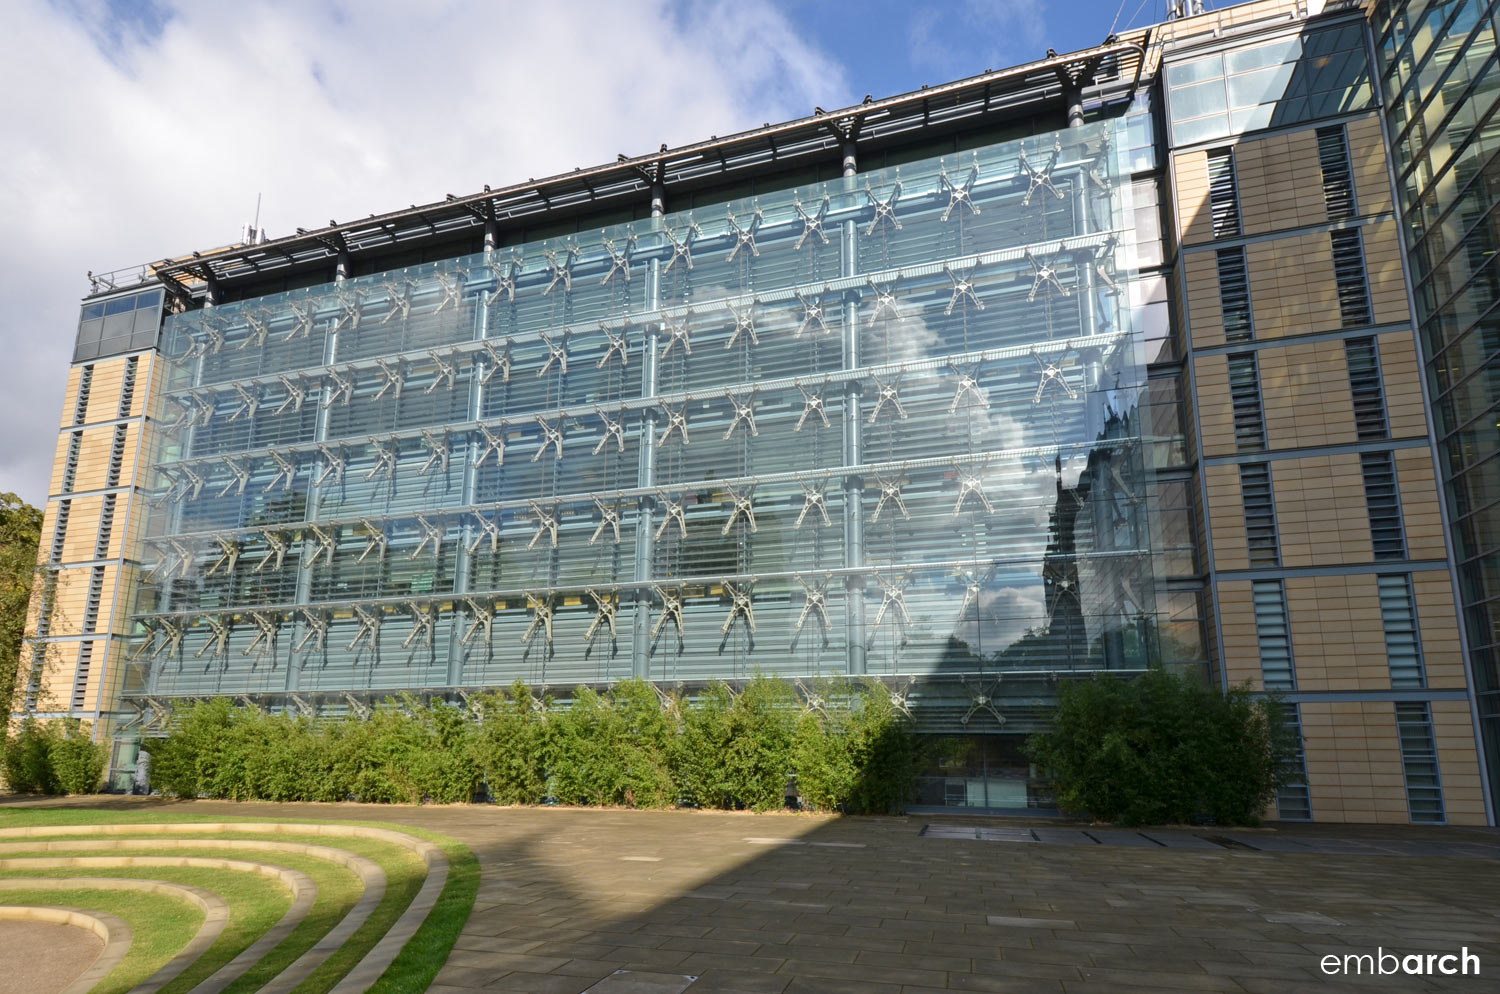 Darwin Center at the Natural History Museum, London - view of exterior